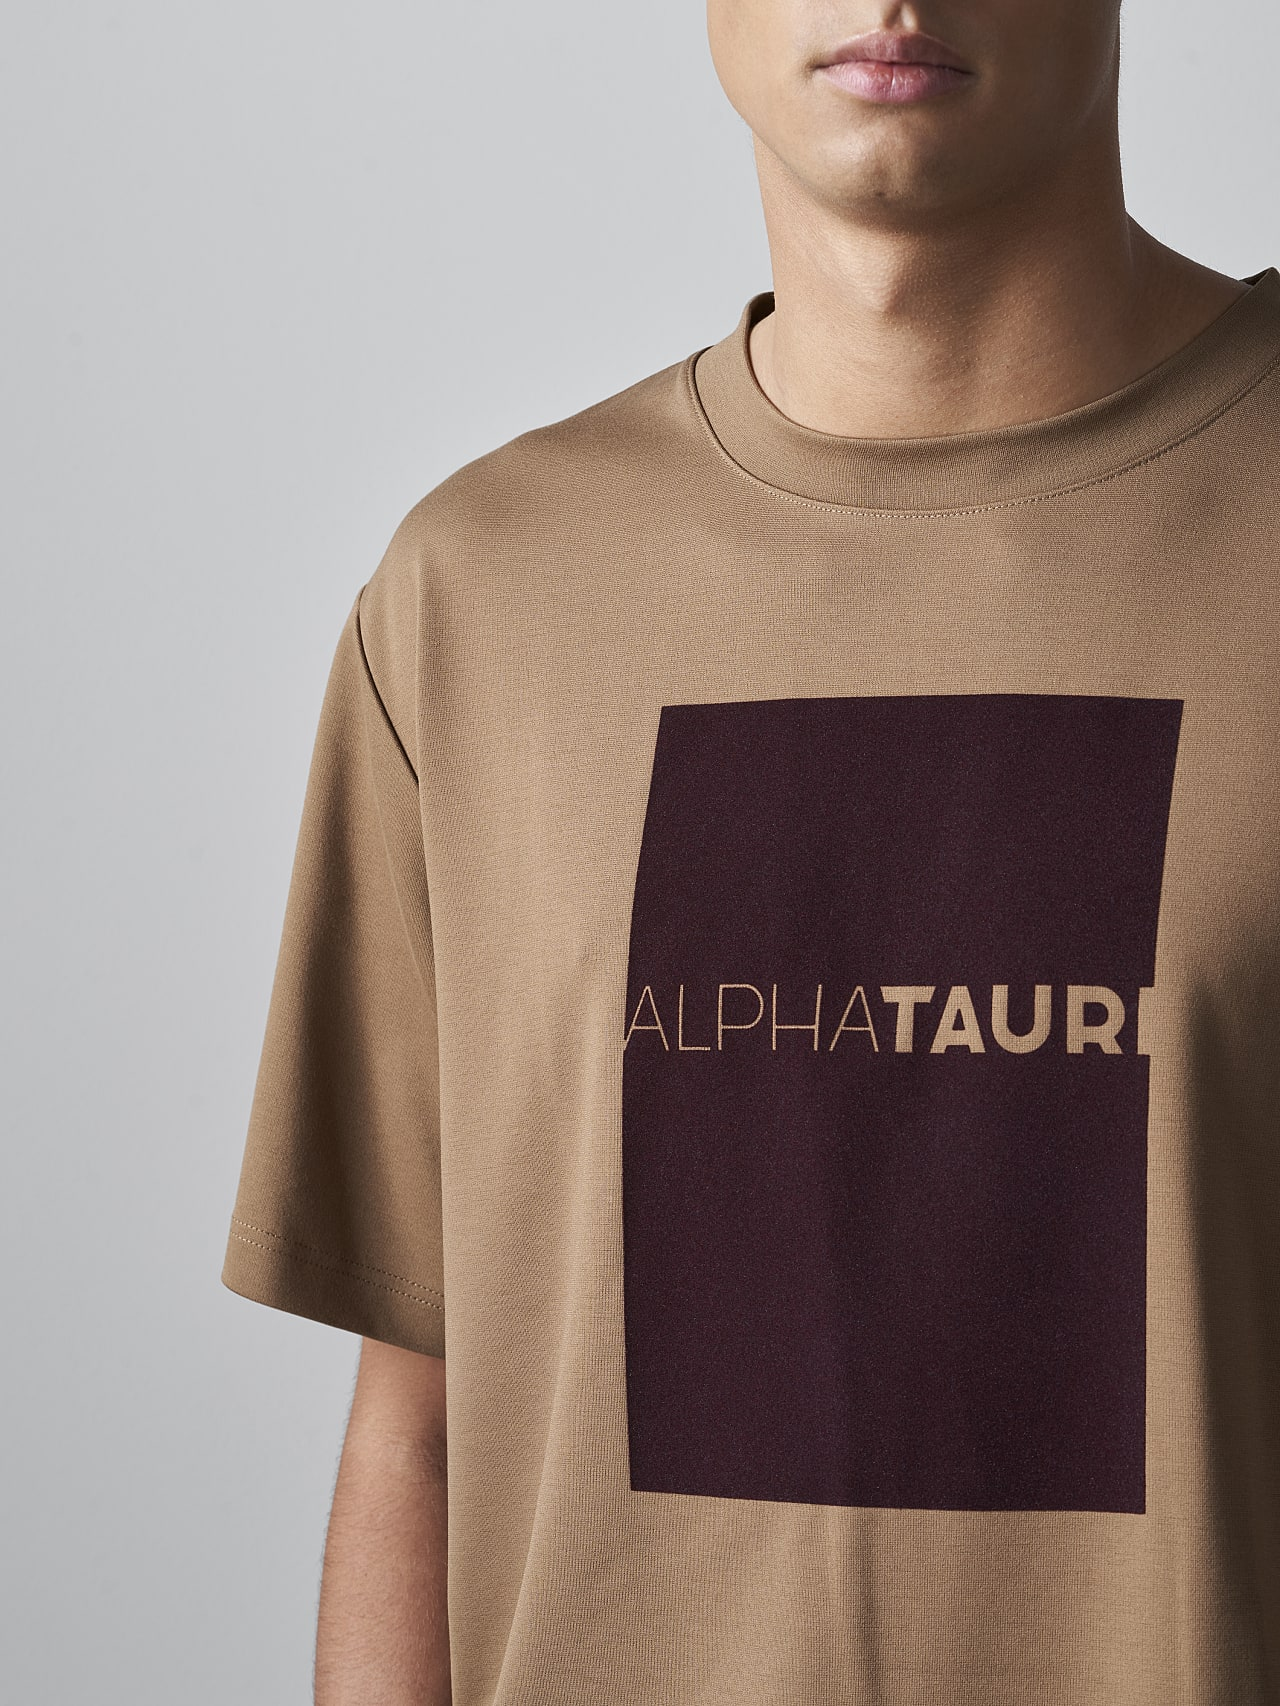 JAHEV V1.Y5.02 Relaxed Logo T-Shirt gold Right Alpha Tauri